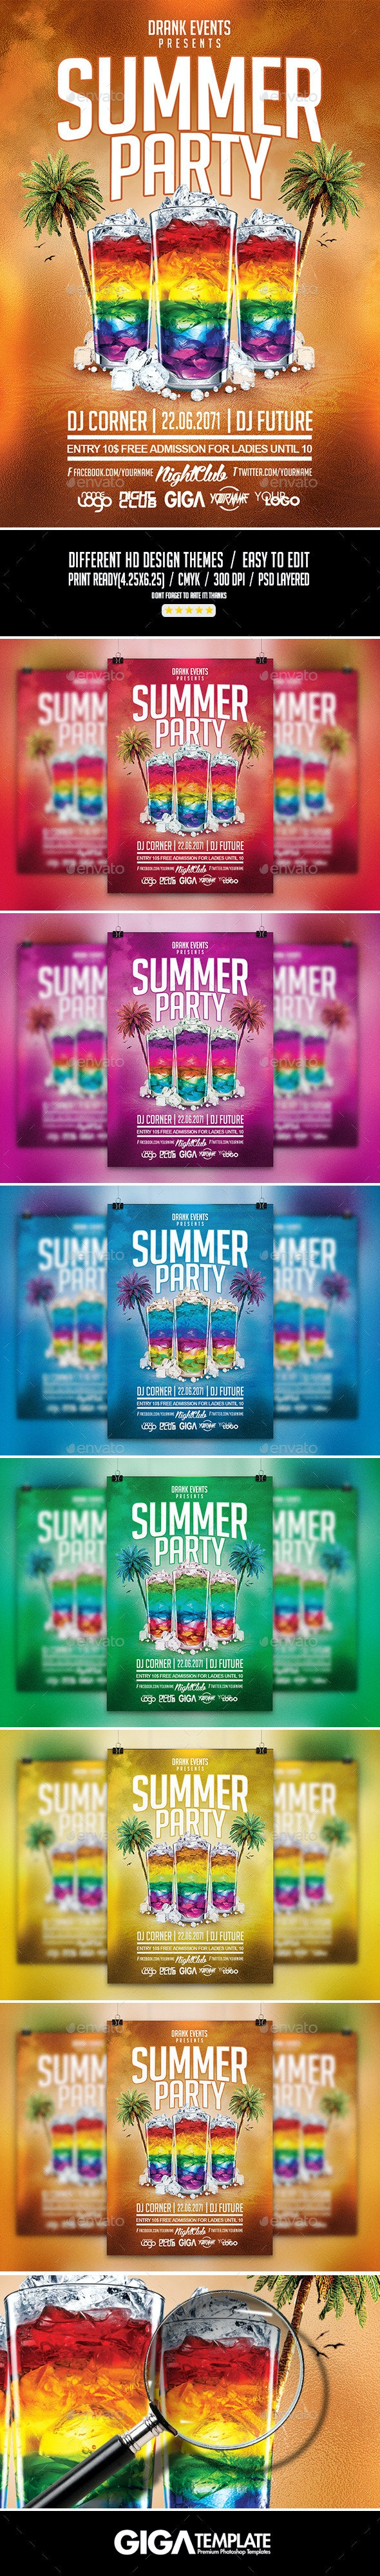 Summer Party |Cocktail Night Flyer PSD Template - Events Flyers